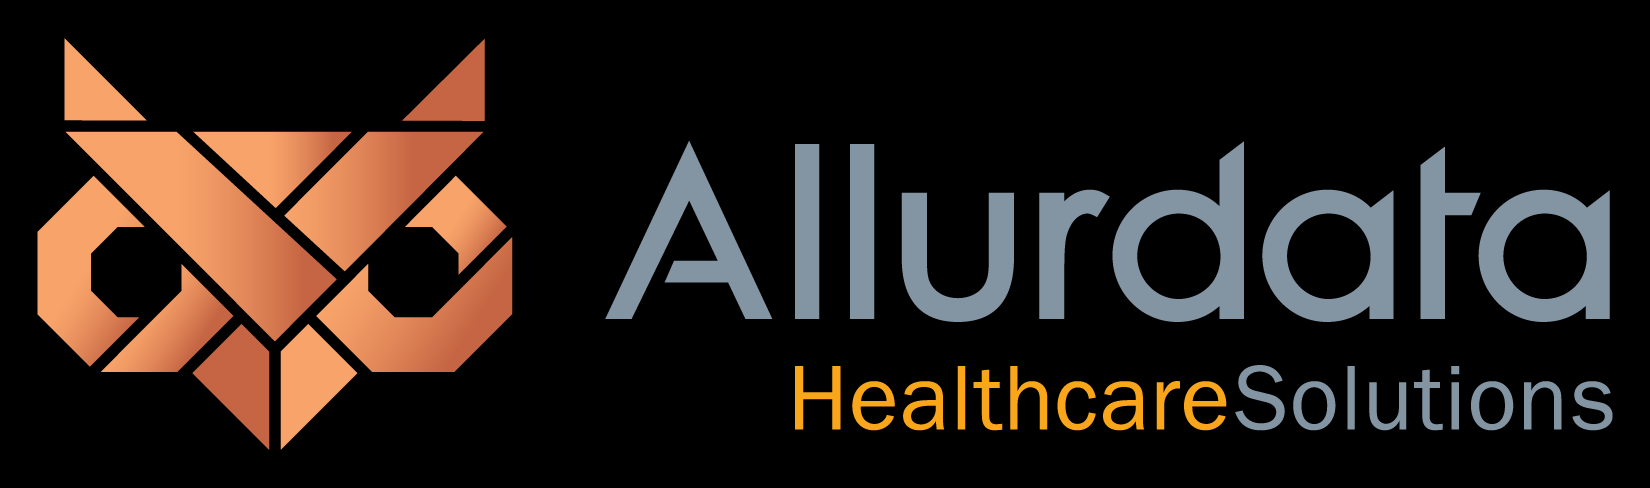 Allurdata Advantage